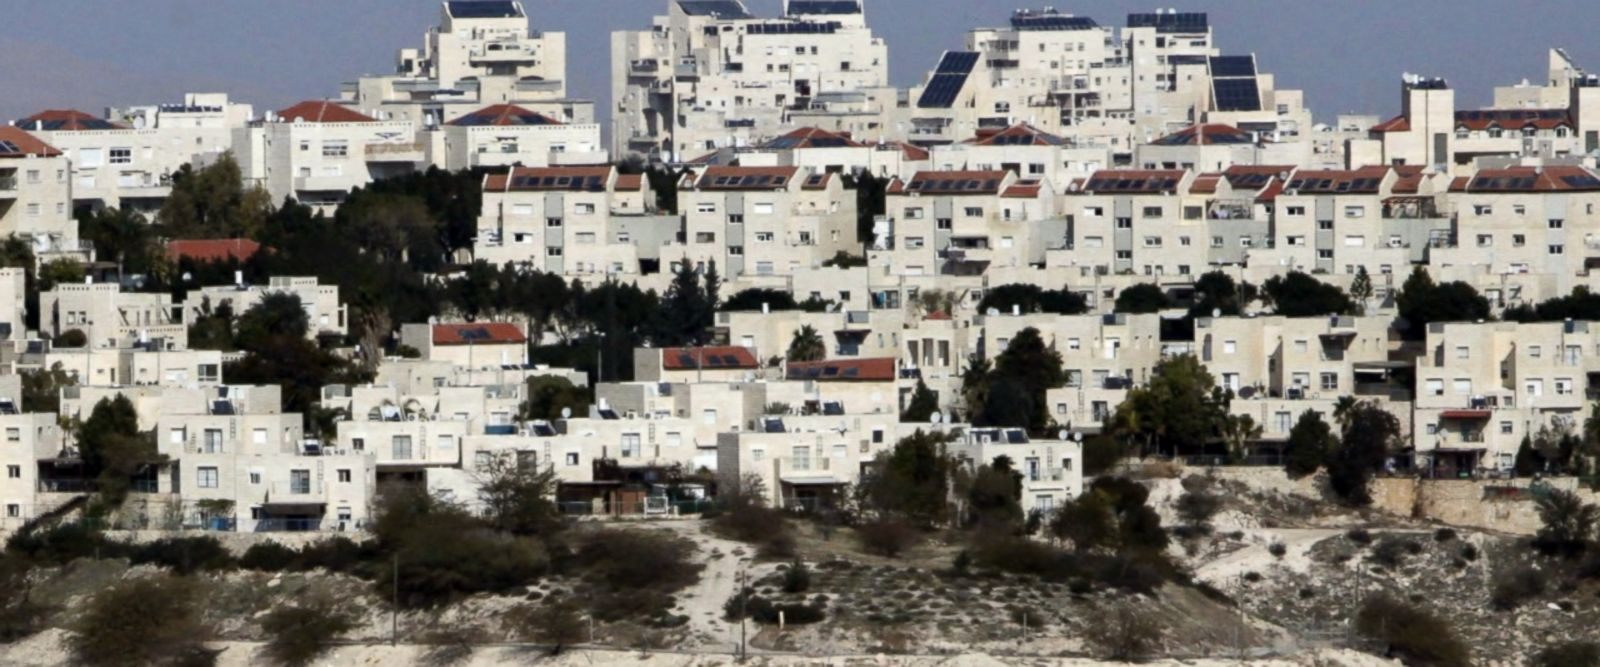 "VIDEO: The construction of new Israeli settlements ""may not be helpful in achieving"" peace between Israelis and Palestinians, White House press secretary Sean Spicer said on Thursday."